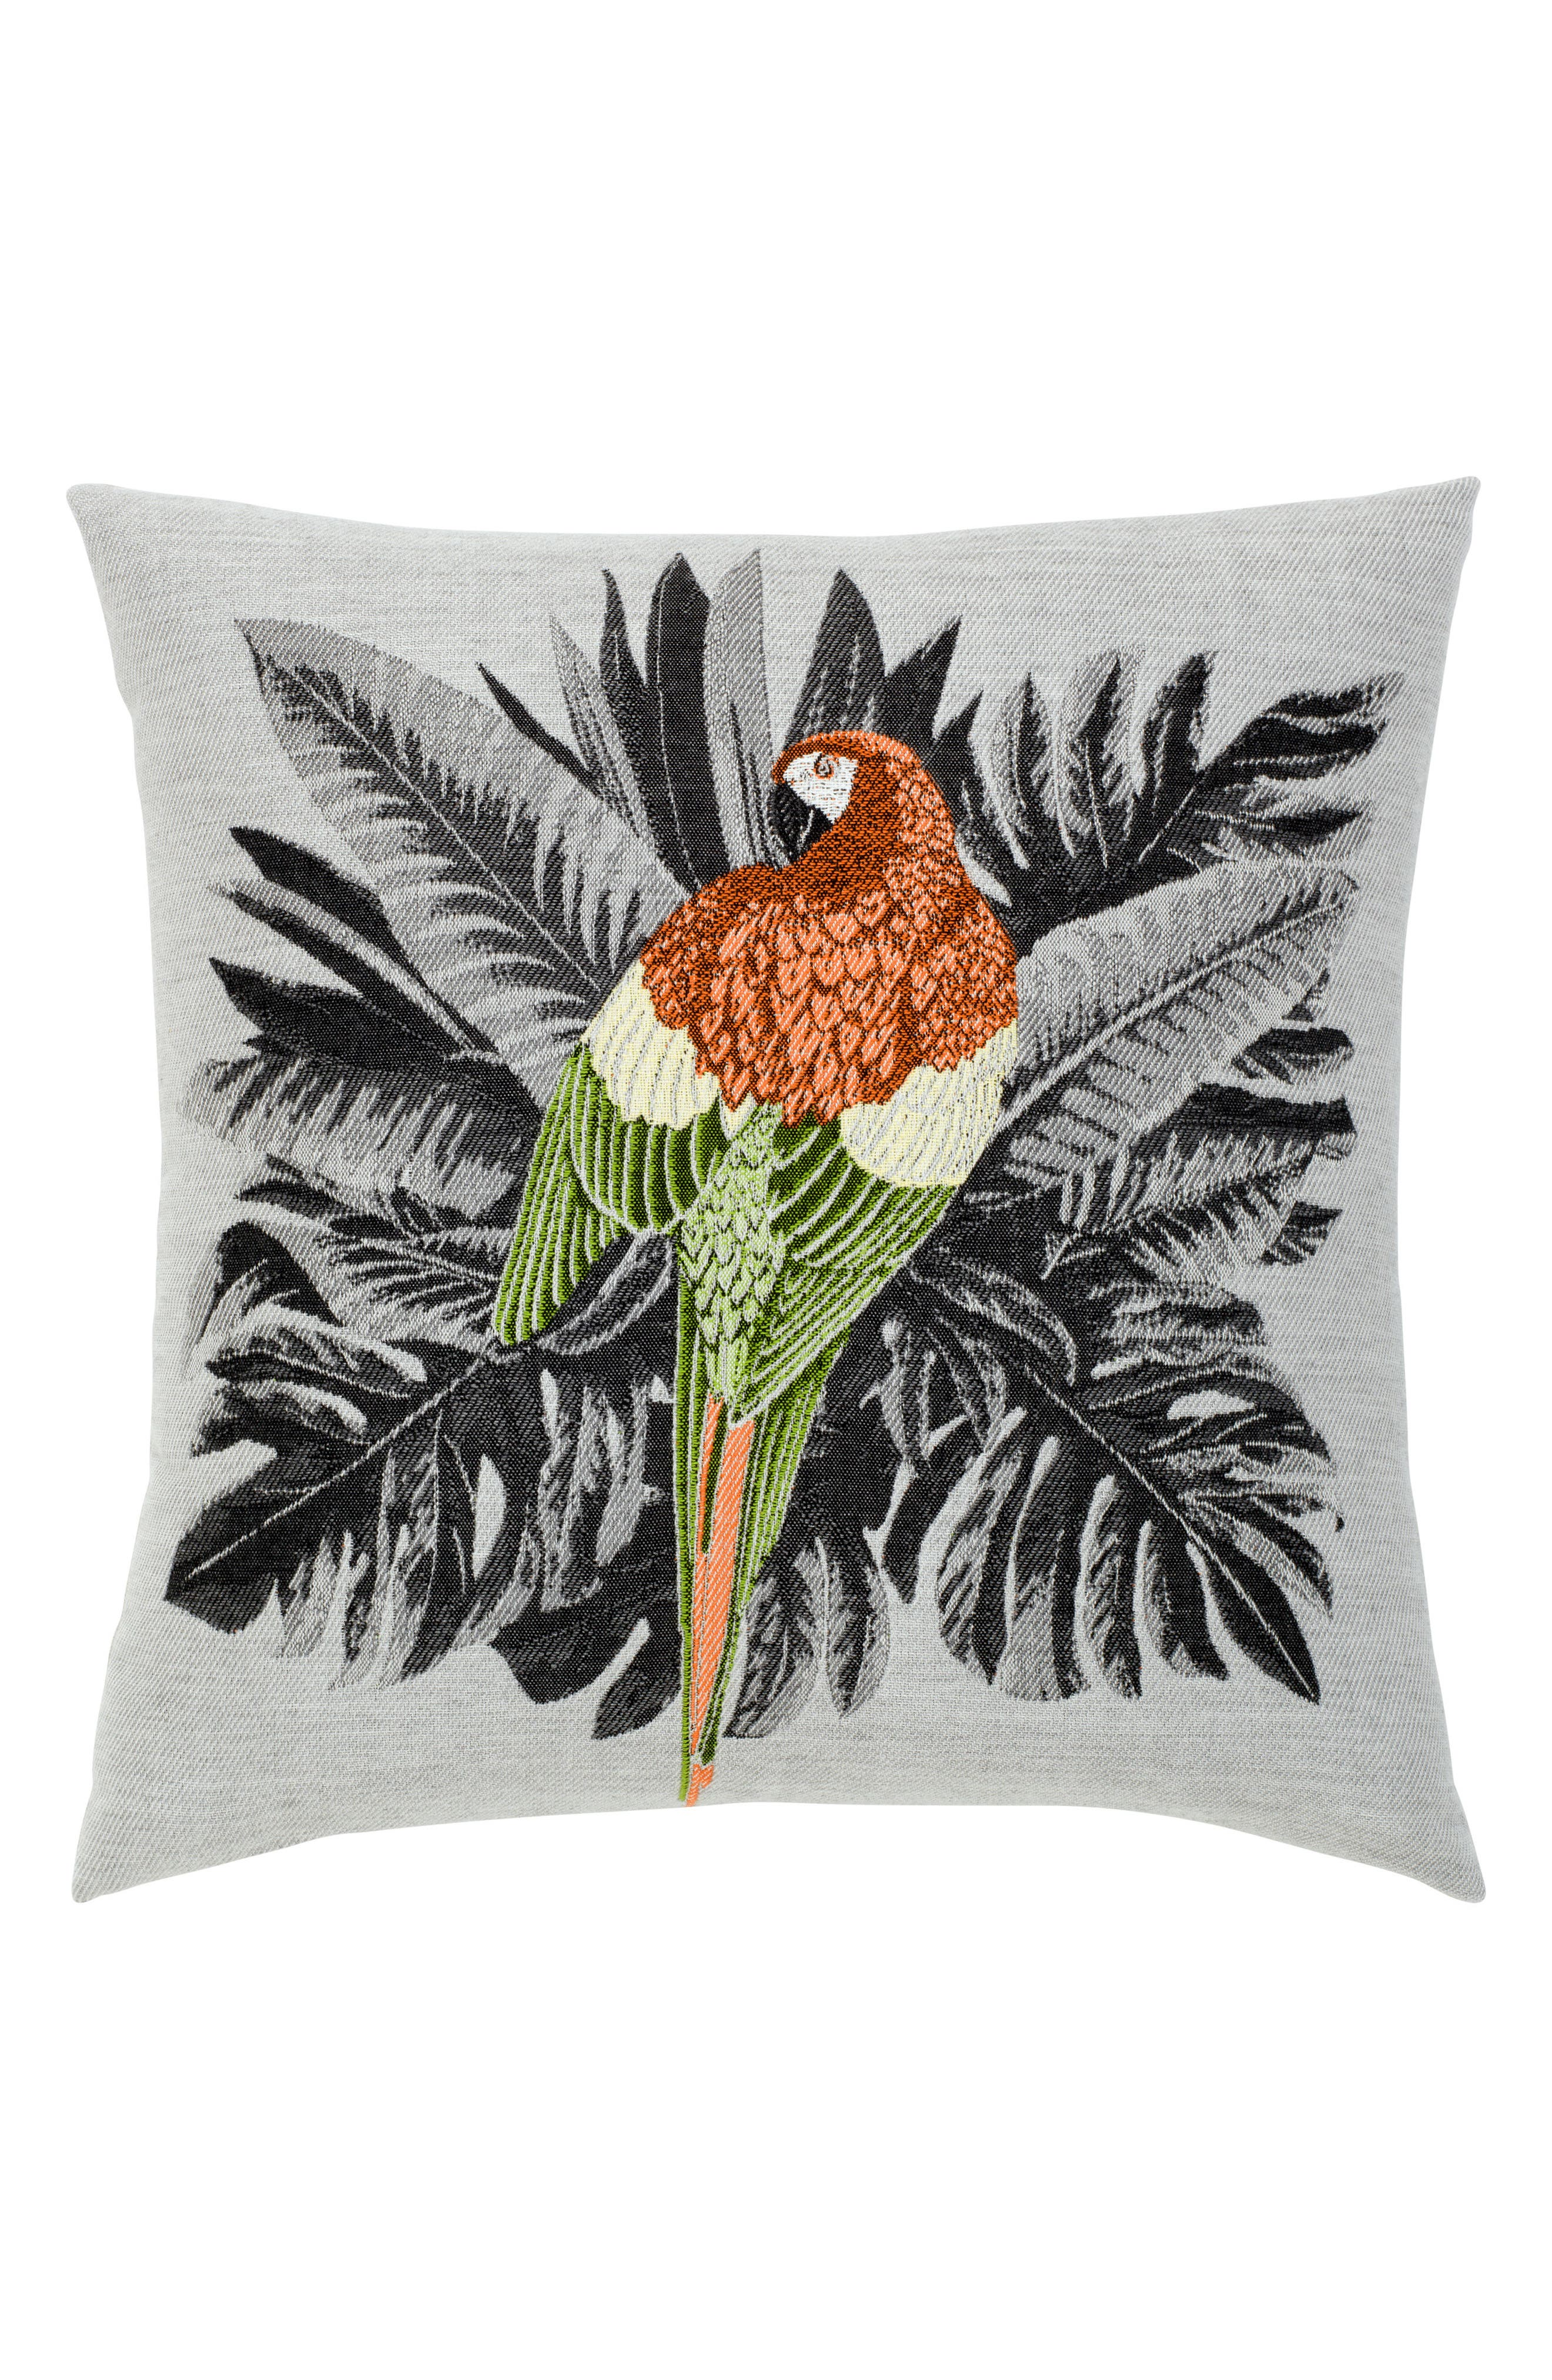 Macaw Indoor/Outdoor Accent Pillow,                         Main,                         color, 020